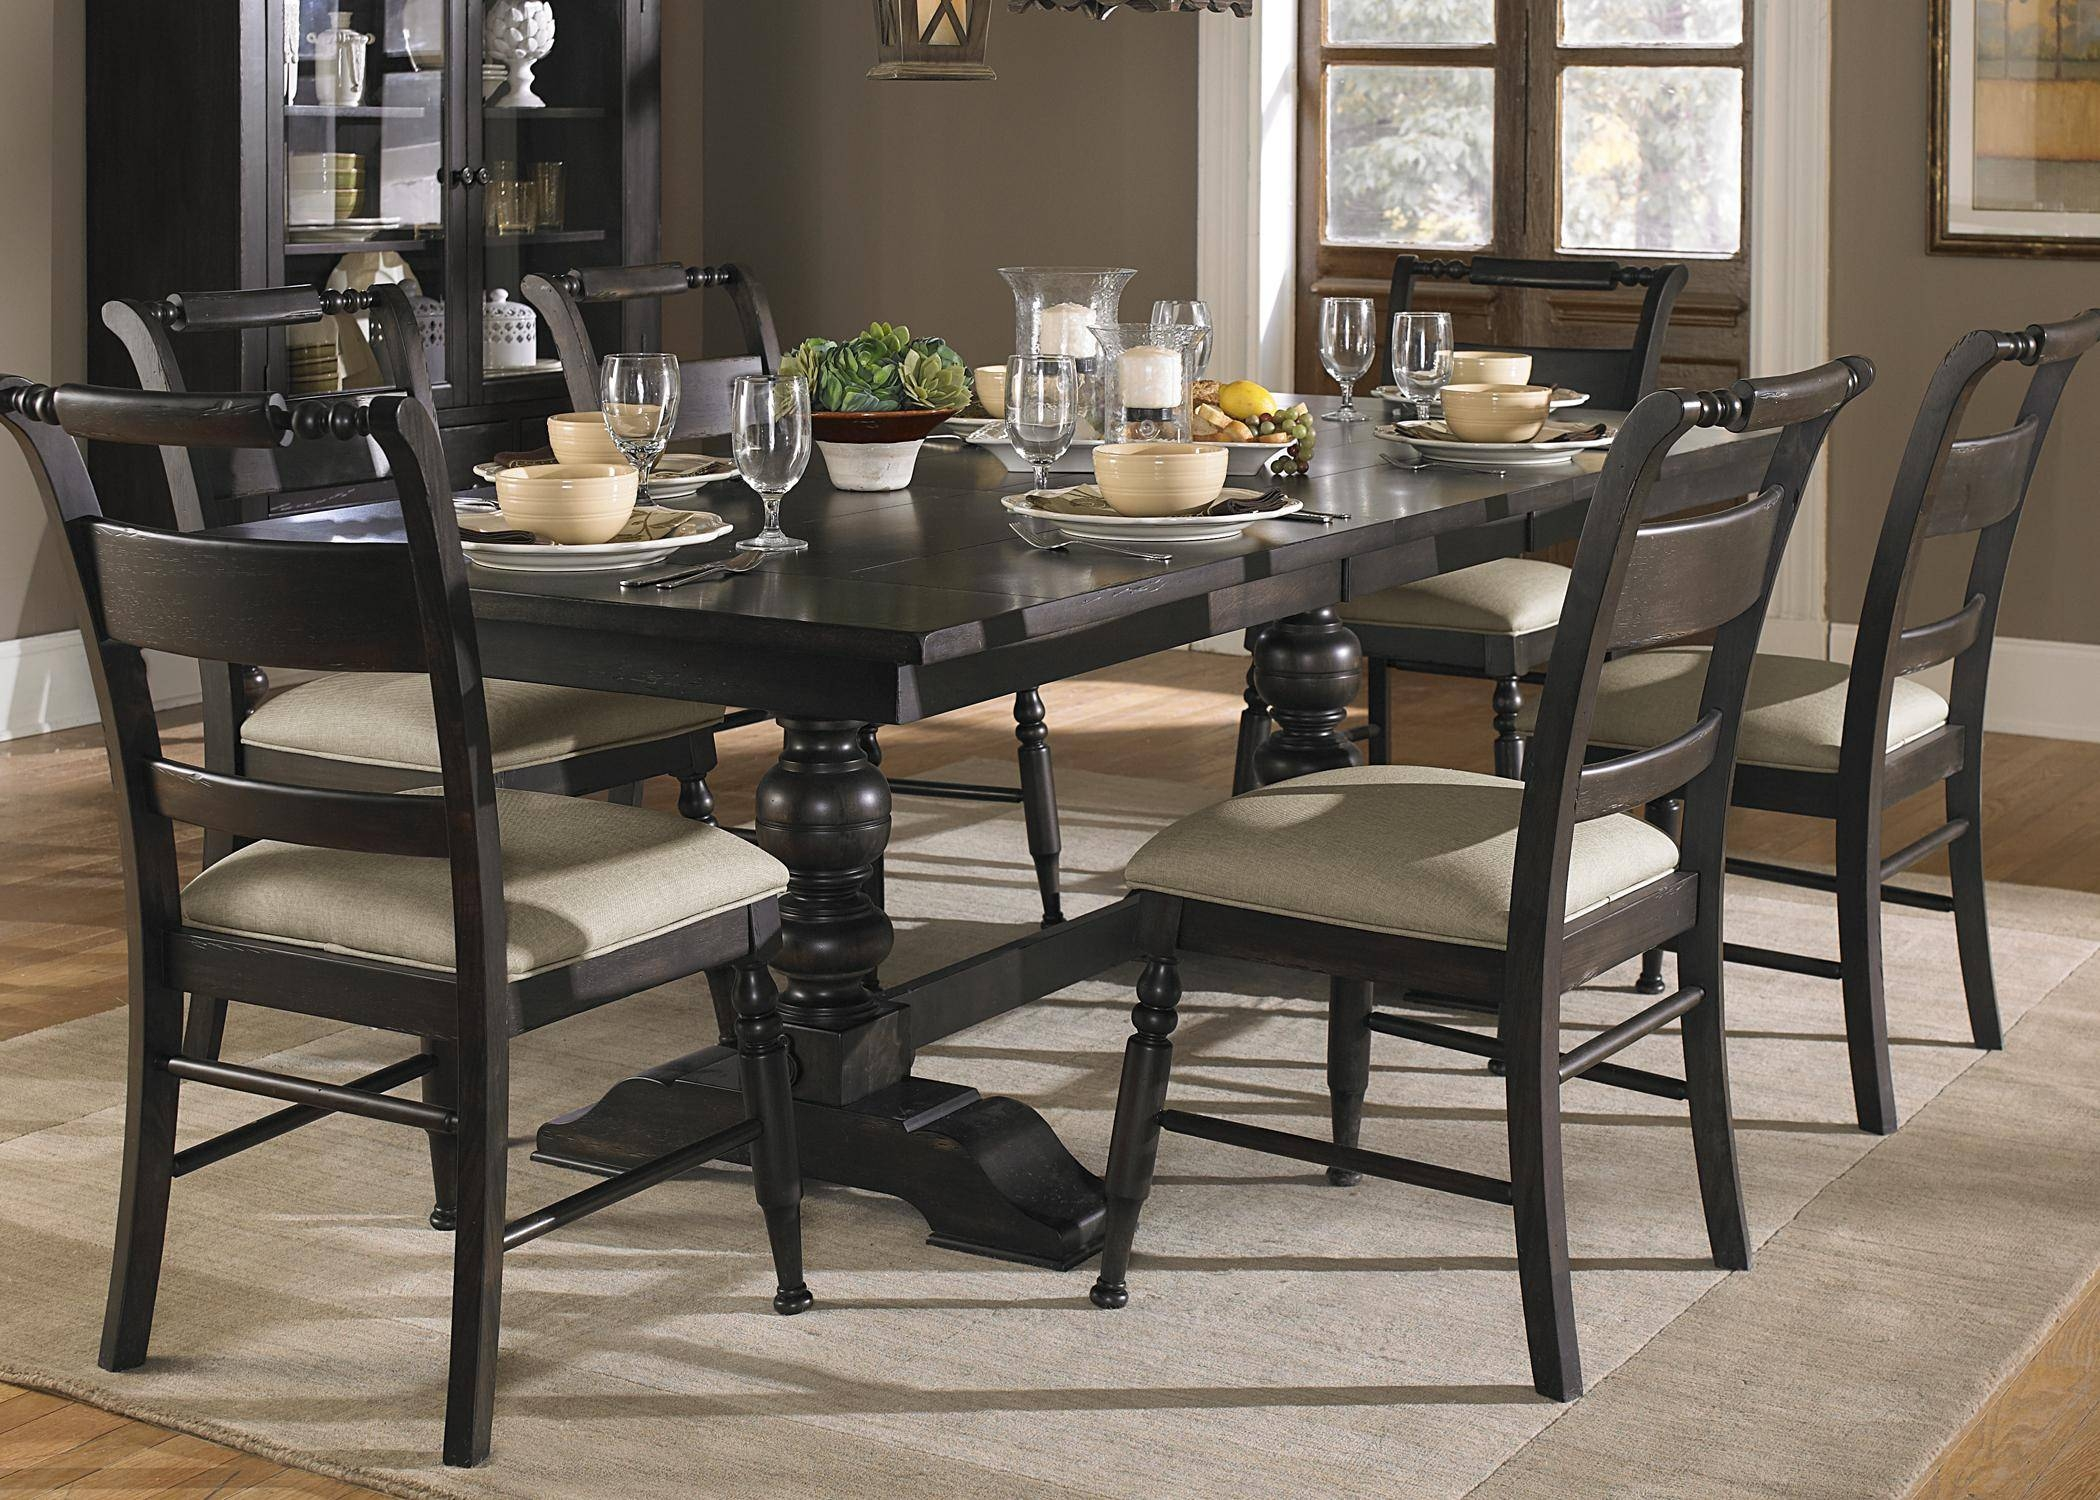 Black Dining Room Set Large Table Chair Sets Dressers Sofa Console For Recent Dining Room Table Chairs And Sideboards (#2 of 15)